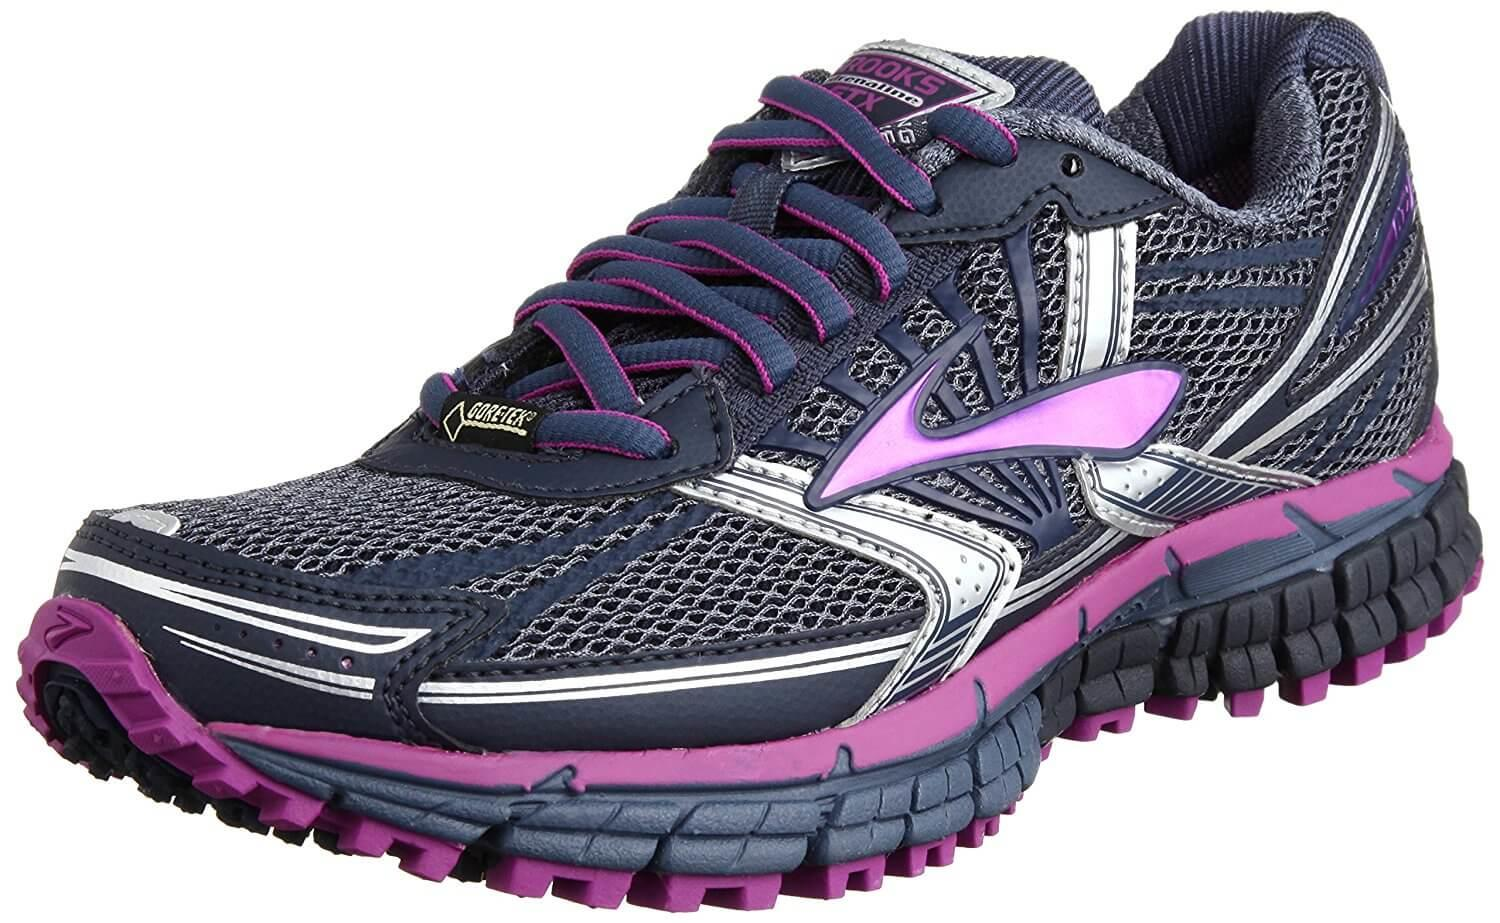 the Brooks Adrenaline ASR 11 GTX shown from the front/side